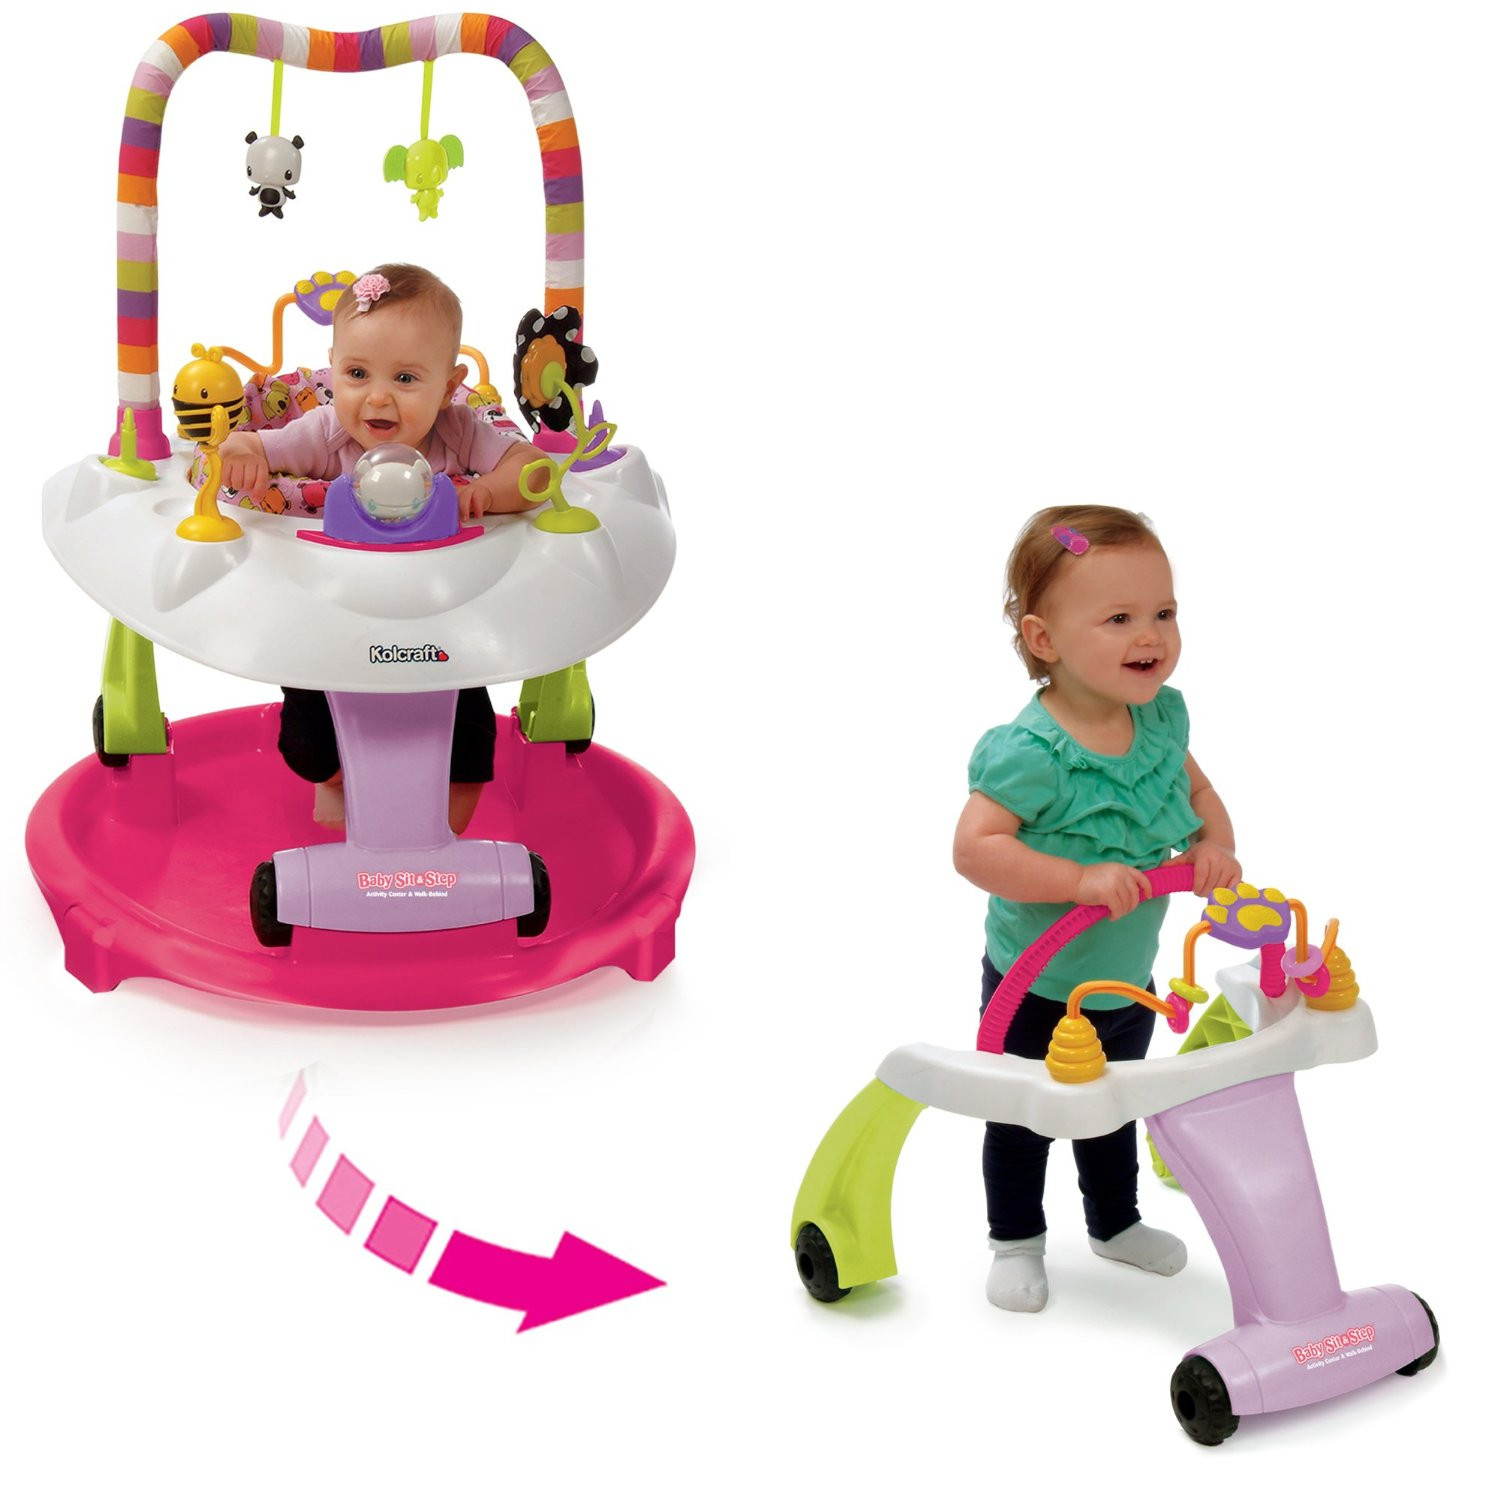 Baby Activity Center Kolcraft Baby Sit Step 2 In 1 Activity Center Pink Bear Hugs